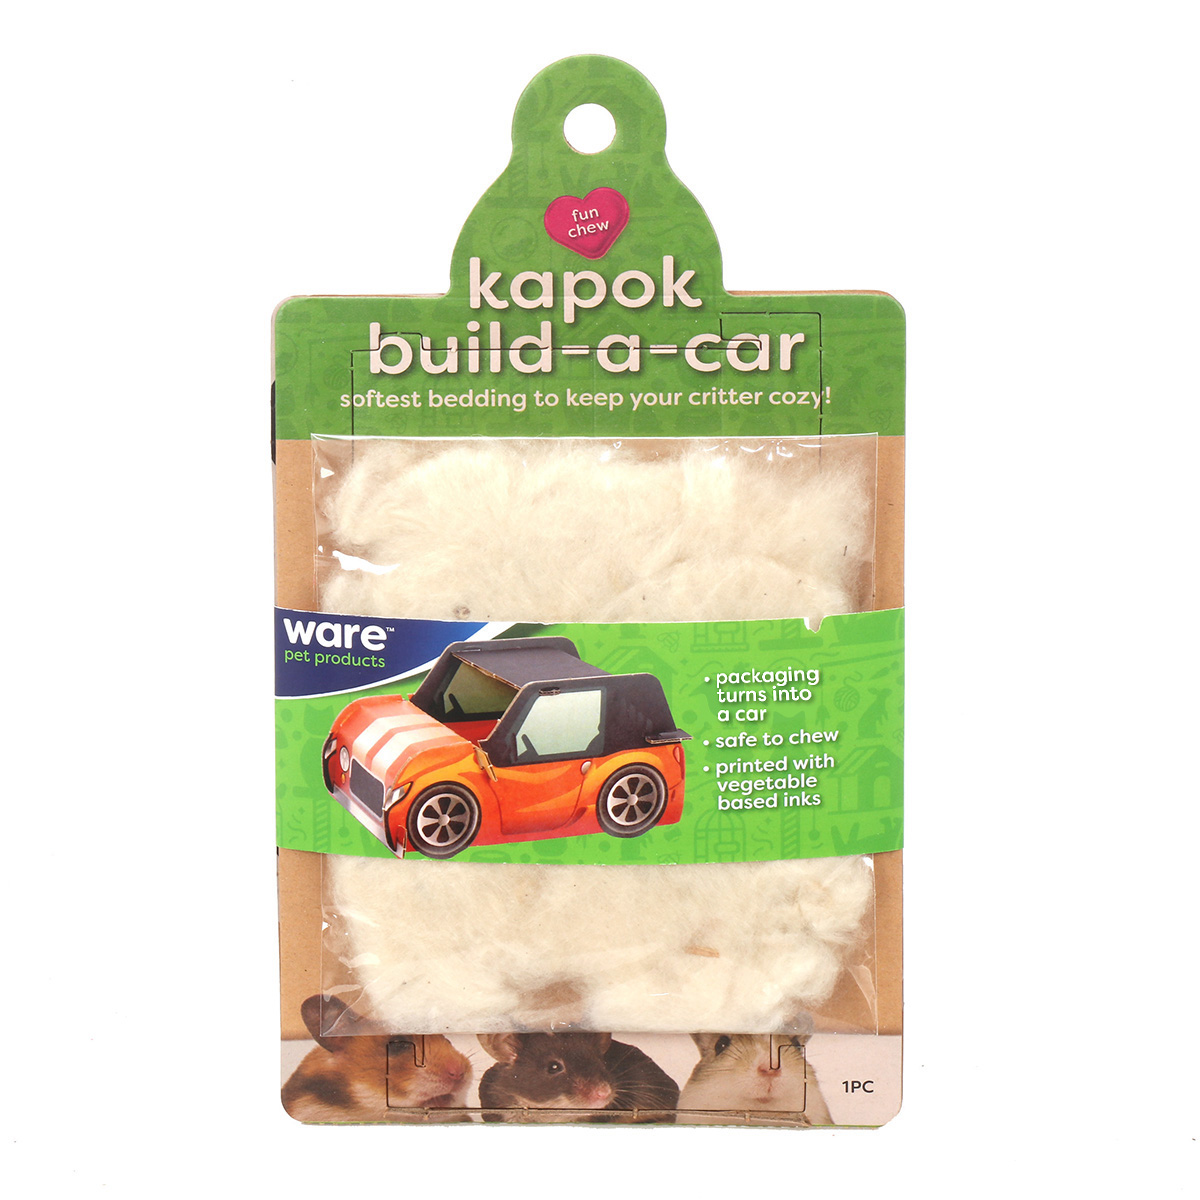 Kapok Build-A-CAR